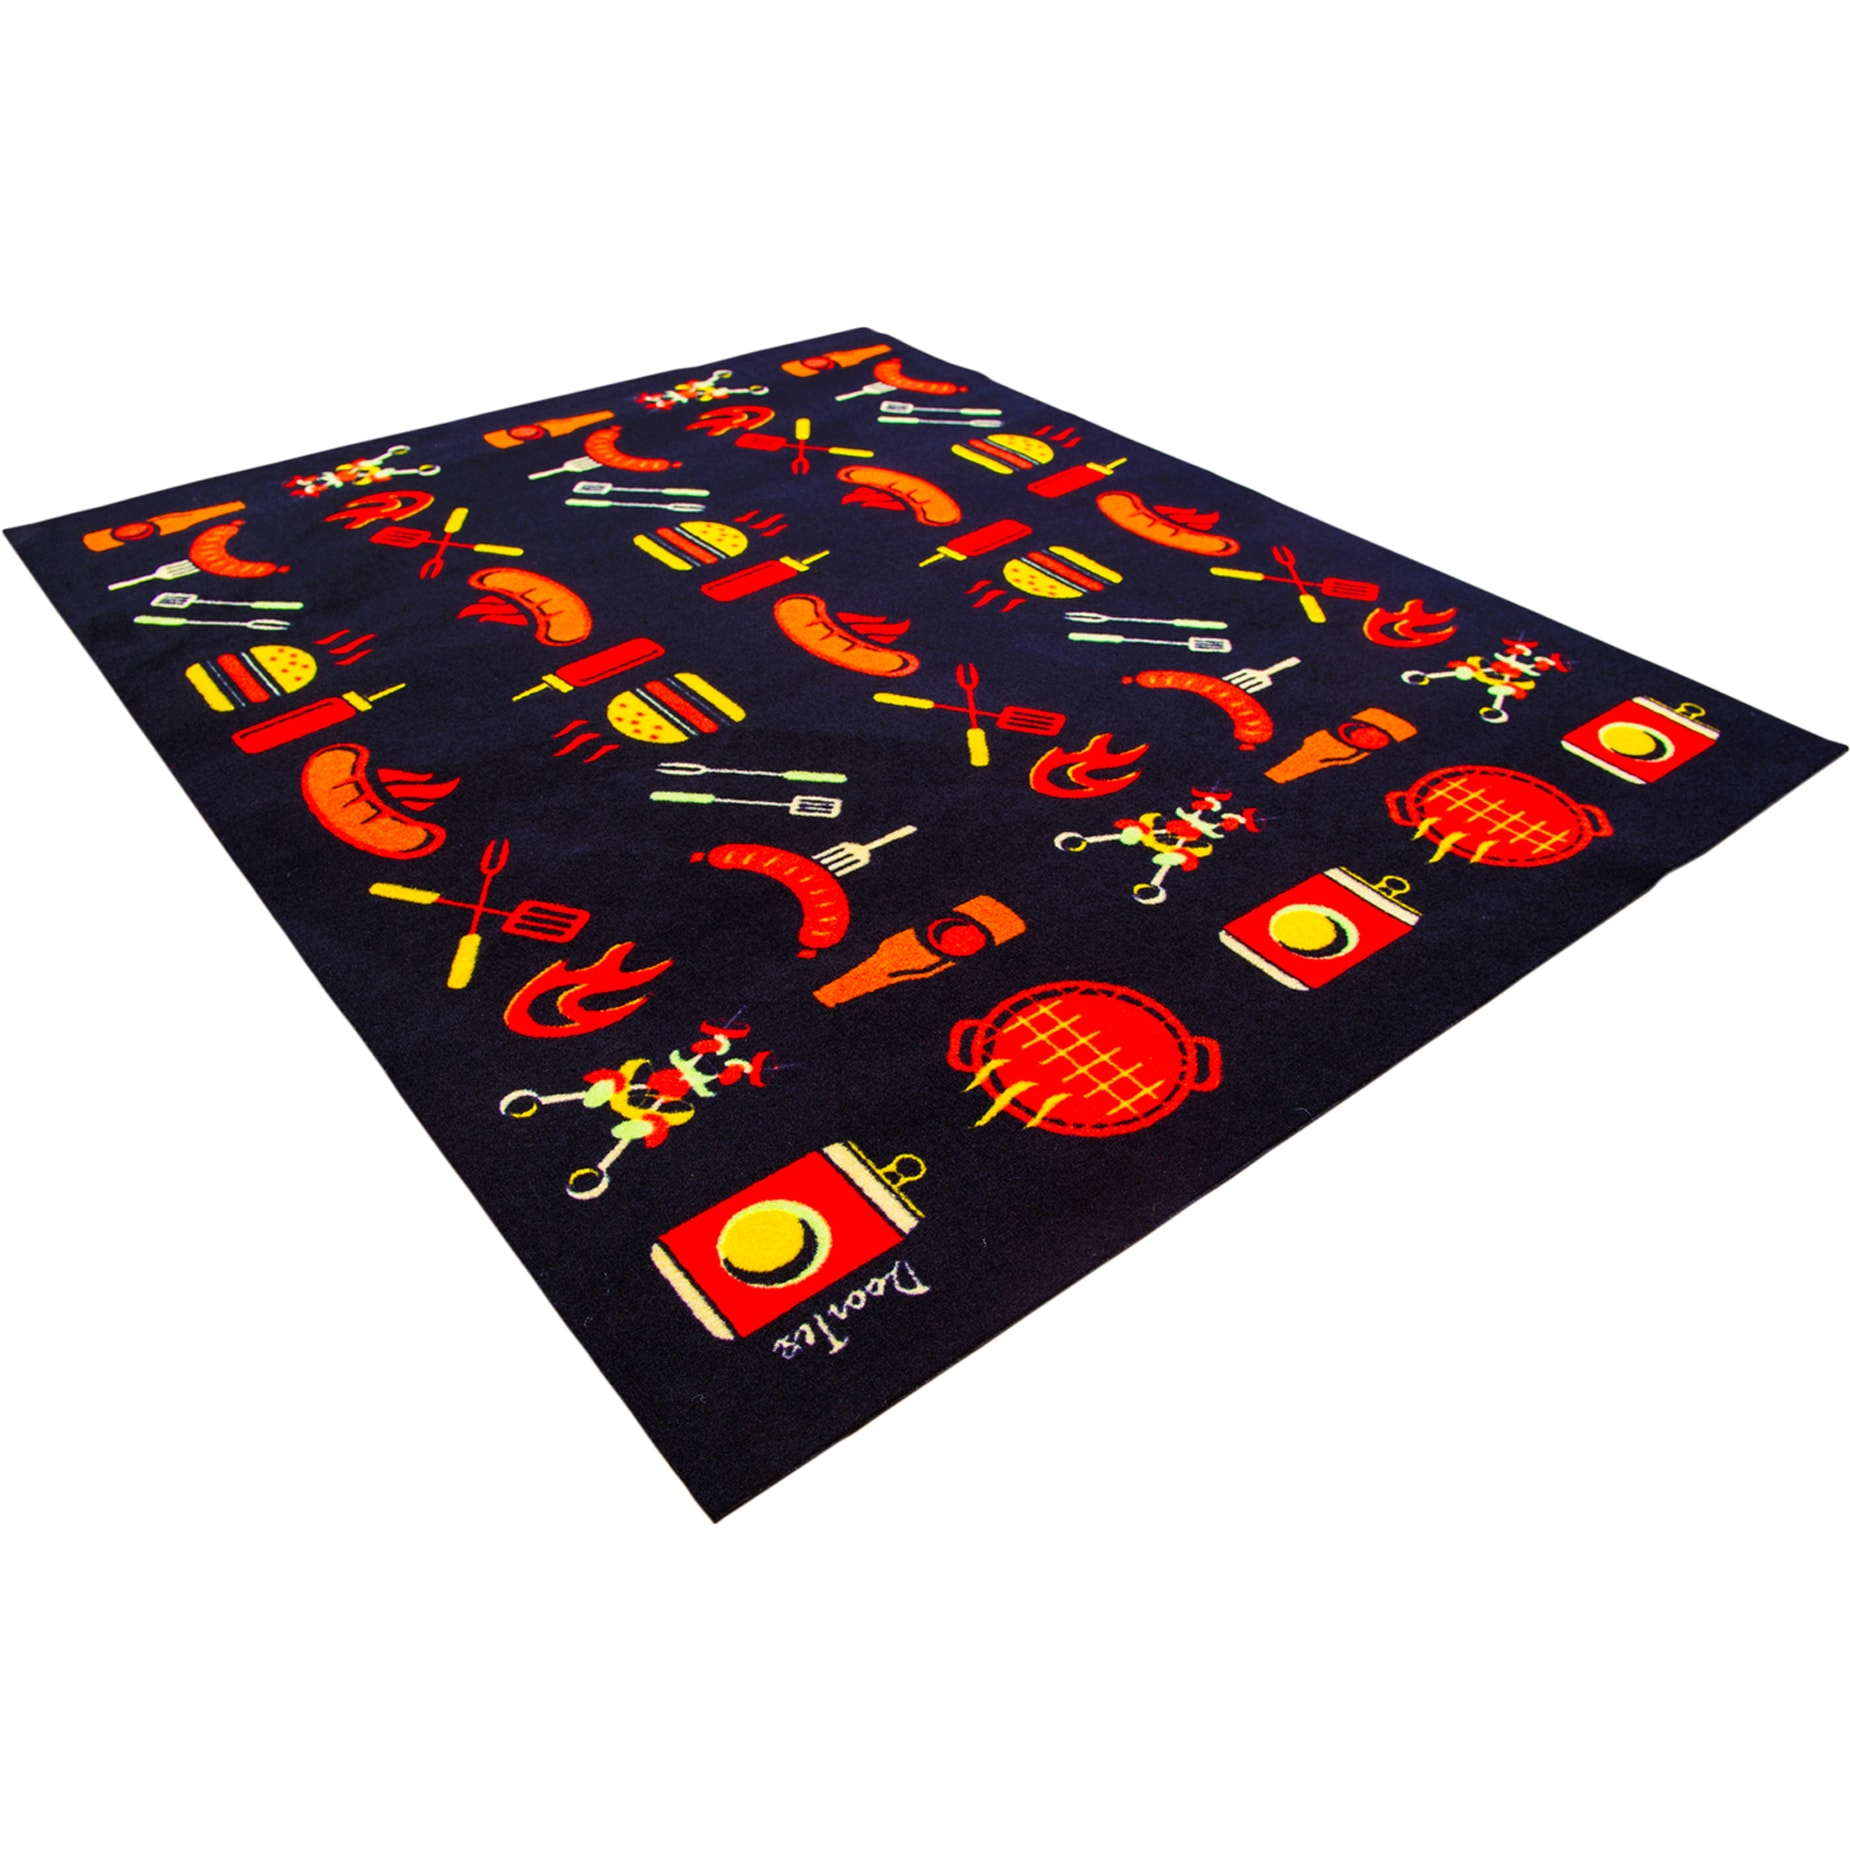 home for ulsga fireproof protection breathtaking grill mat deck mats interior